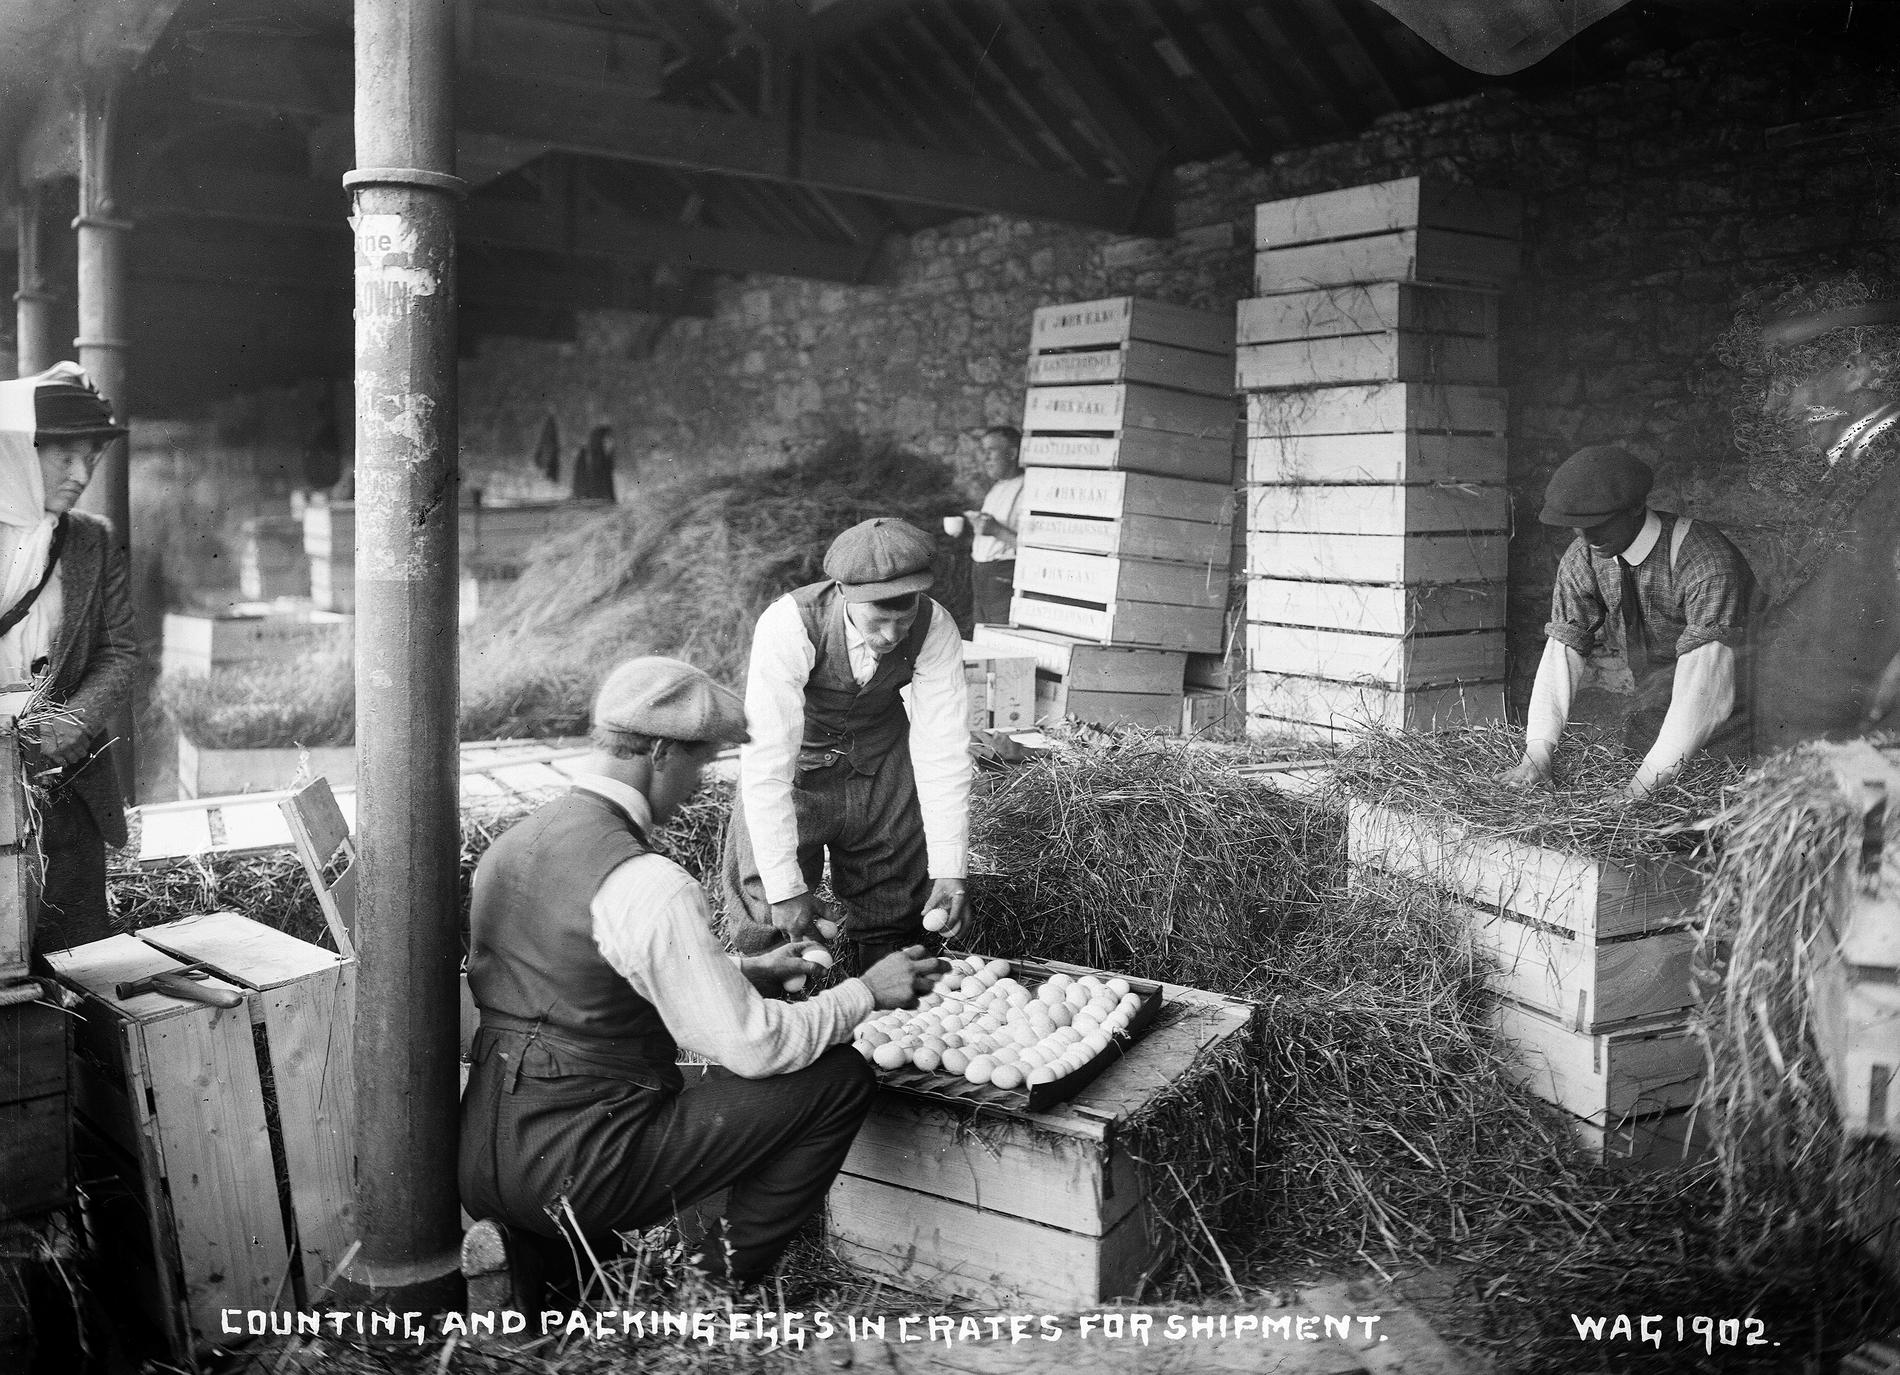 COUNTING AND PACKING EGGS IN CRATES FOR SHIPMENT (Photograph; glass plate negative)